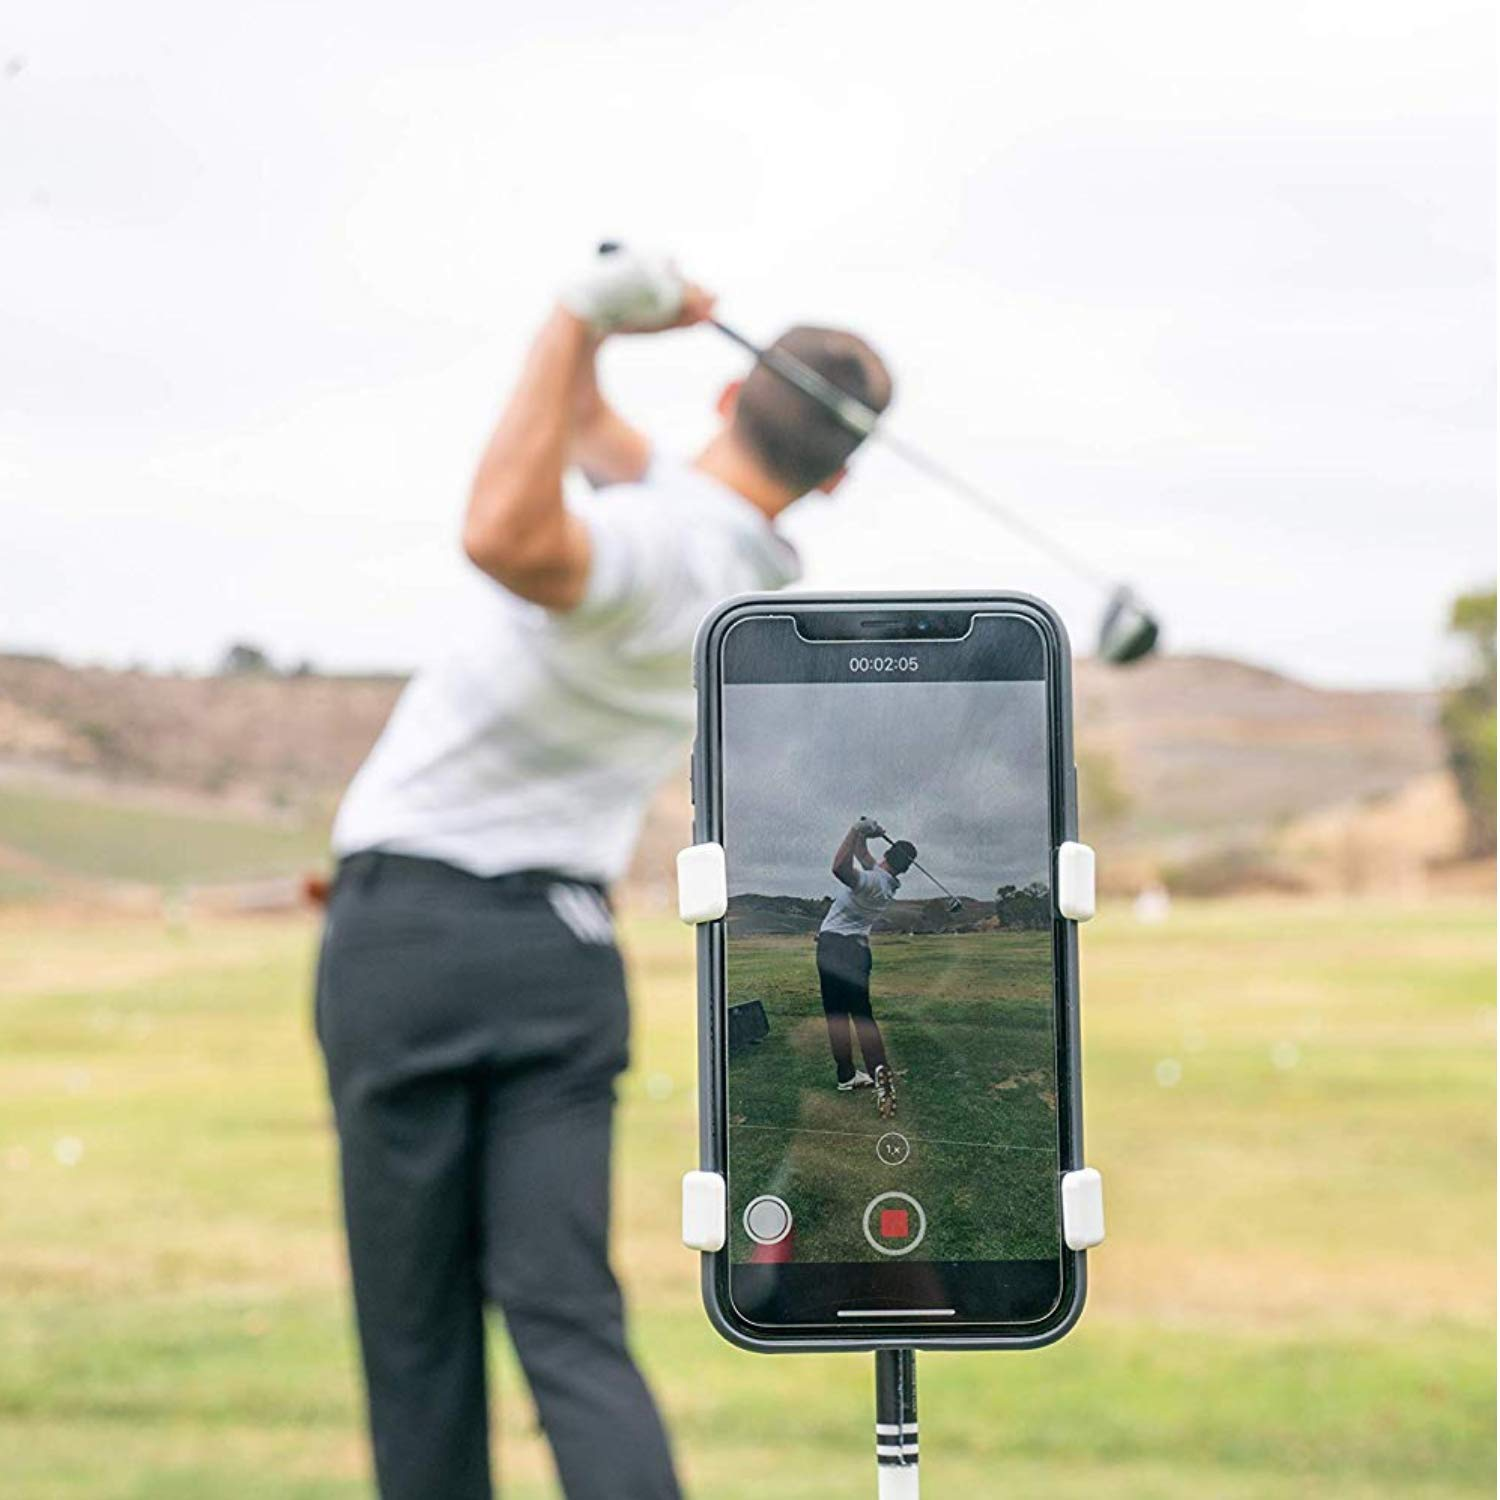 SelfieGolf Record Golf Swing - Cell Phone Clip Holder and Training Aid - Golf Accessories | Winner of The PGA Best Product | Works with Any Smart Phone, Quick Set Up (Green/White)